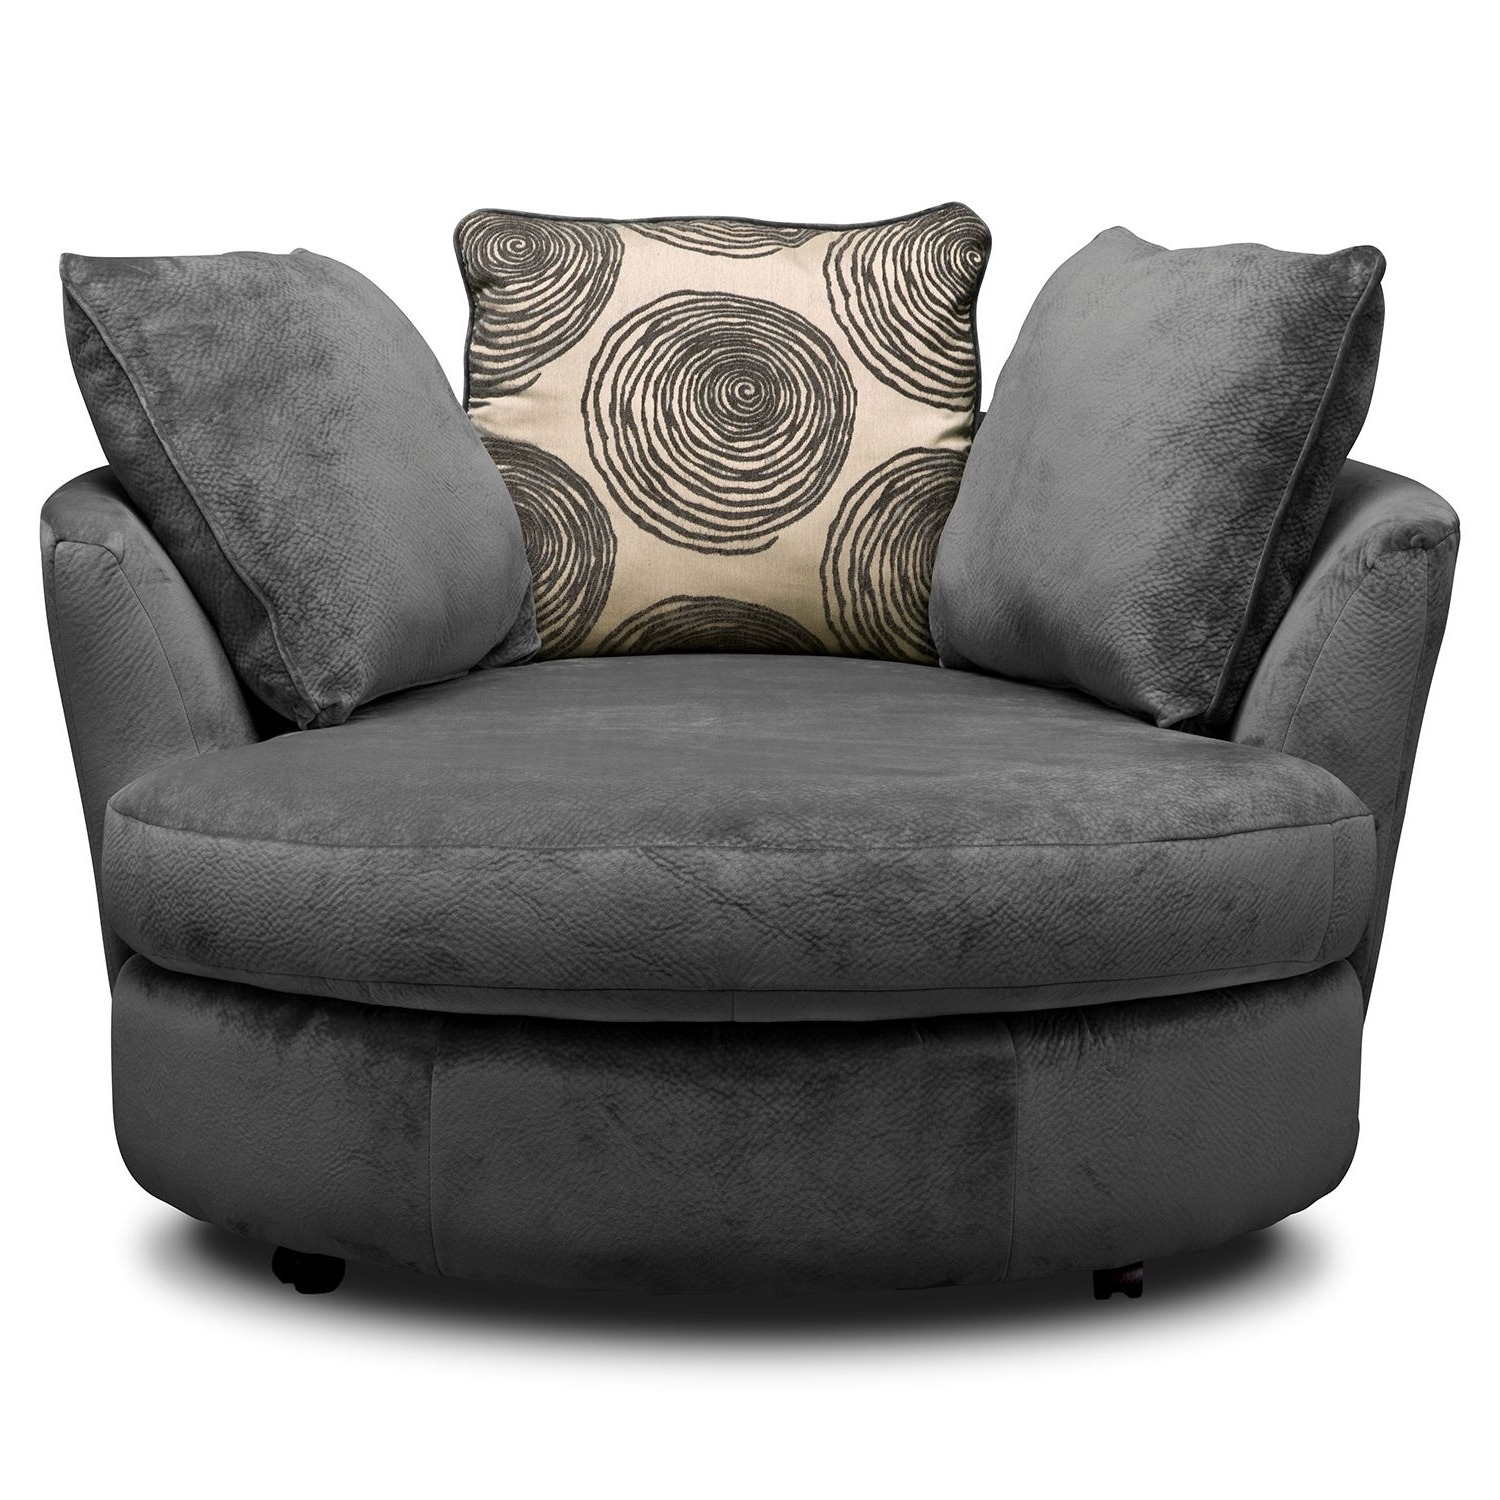 Circular Sofa Chairs With Best And Newest Furniture Home: 1 Piece Curved Sofa Amazon Furniture Chair (View 8 of 20)